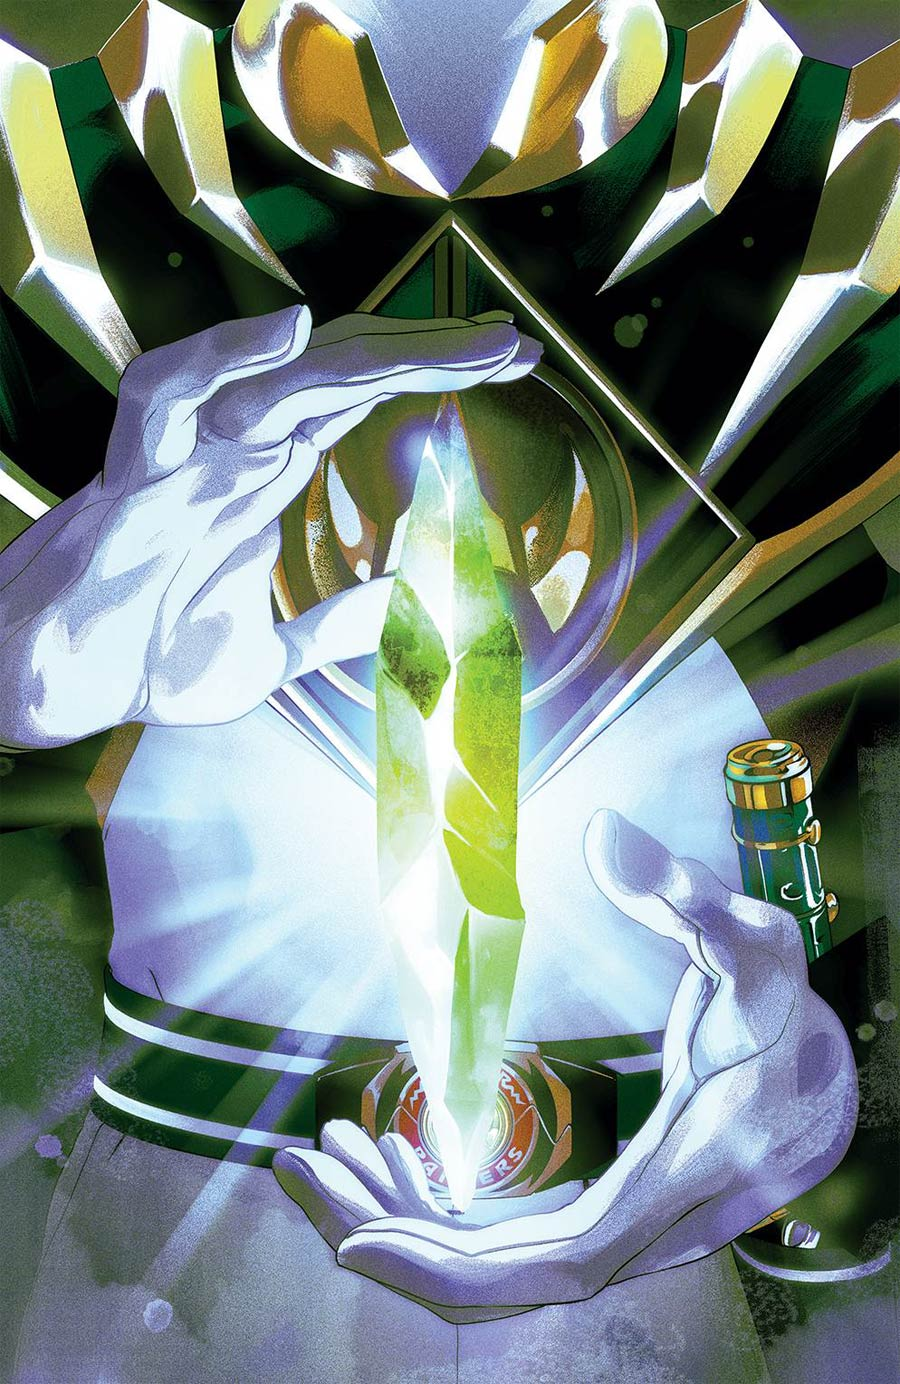 Mighty Morphin Power Rangers (BOOM Studios) #54 Cover B Variant Goni Montes Foil Cover